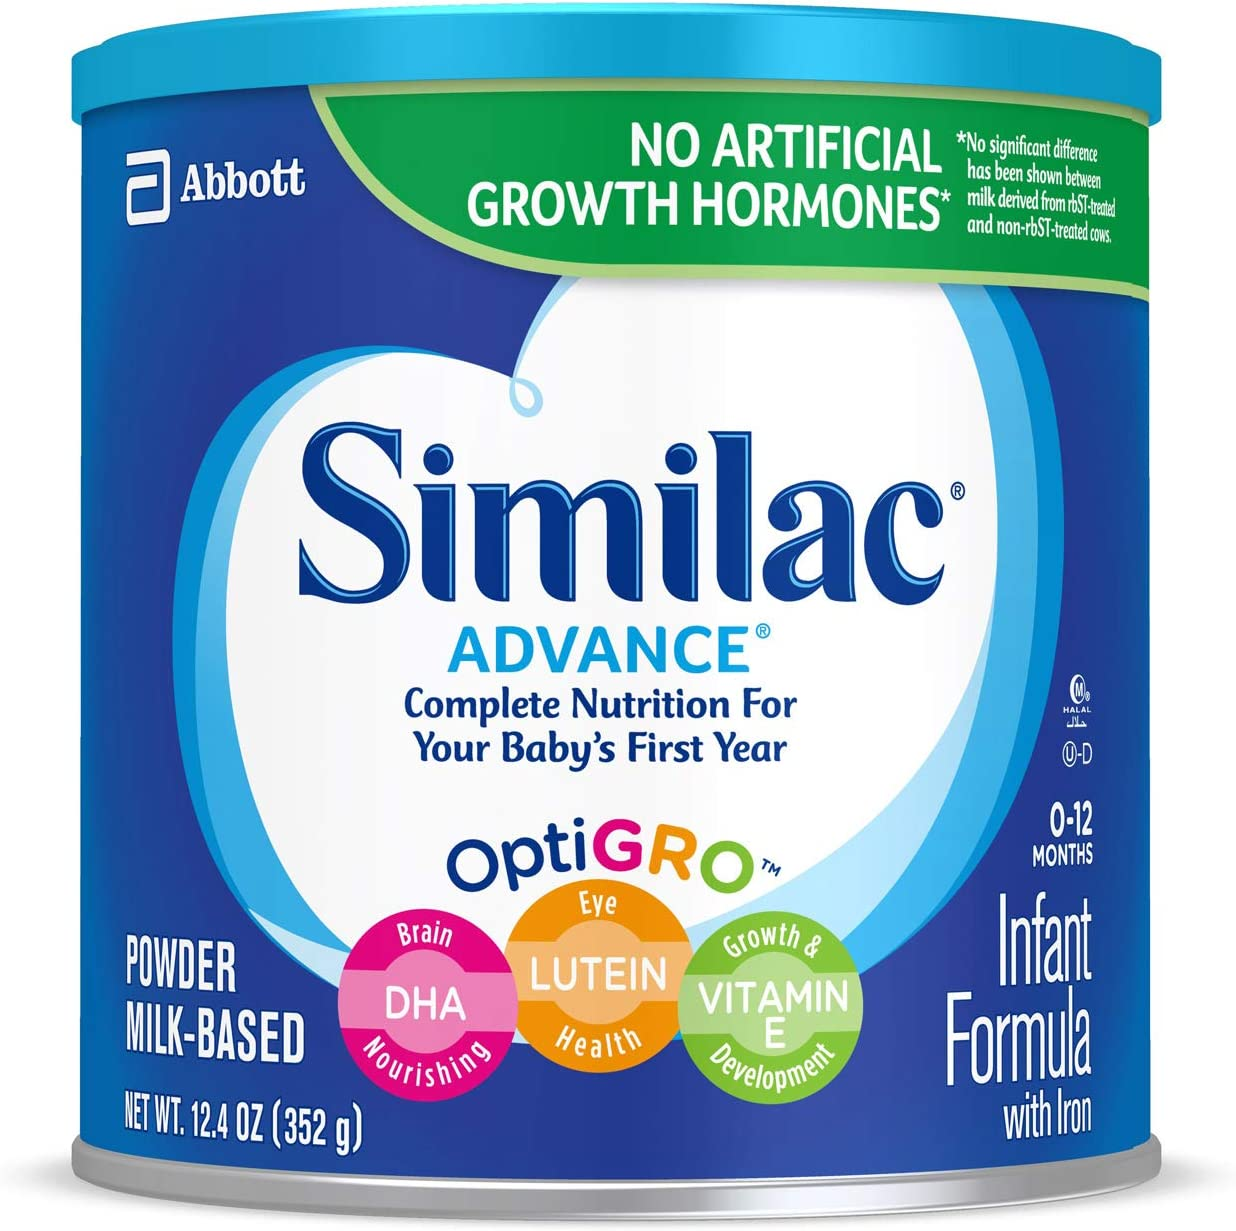 B000AS1LIM Similac Advance Infant Formula with Iron, Baby Formula, Powder, 12.4 oz (Pack of 6) 71KOxyIJFaL.SL1300_